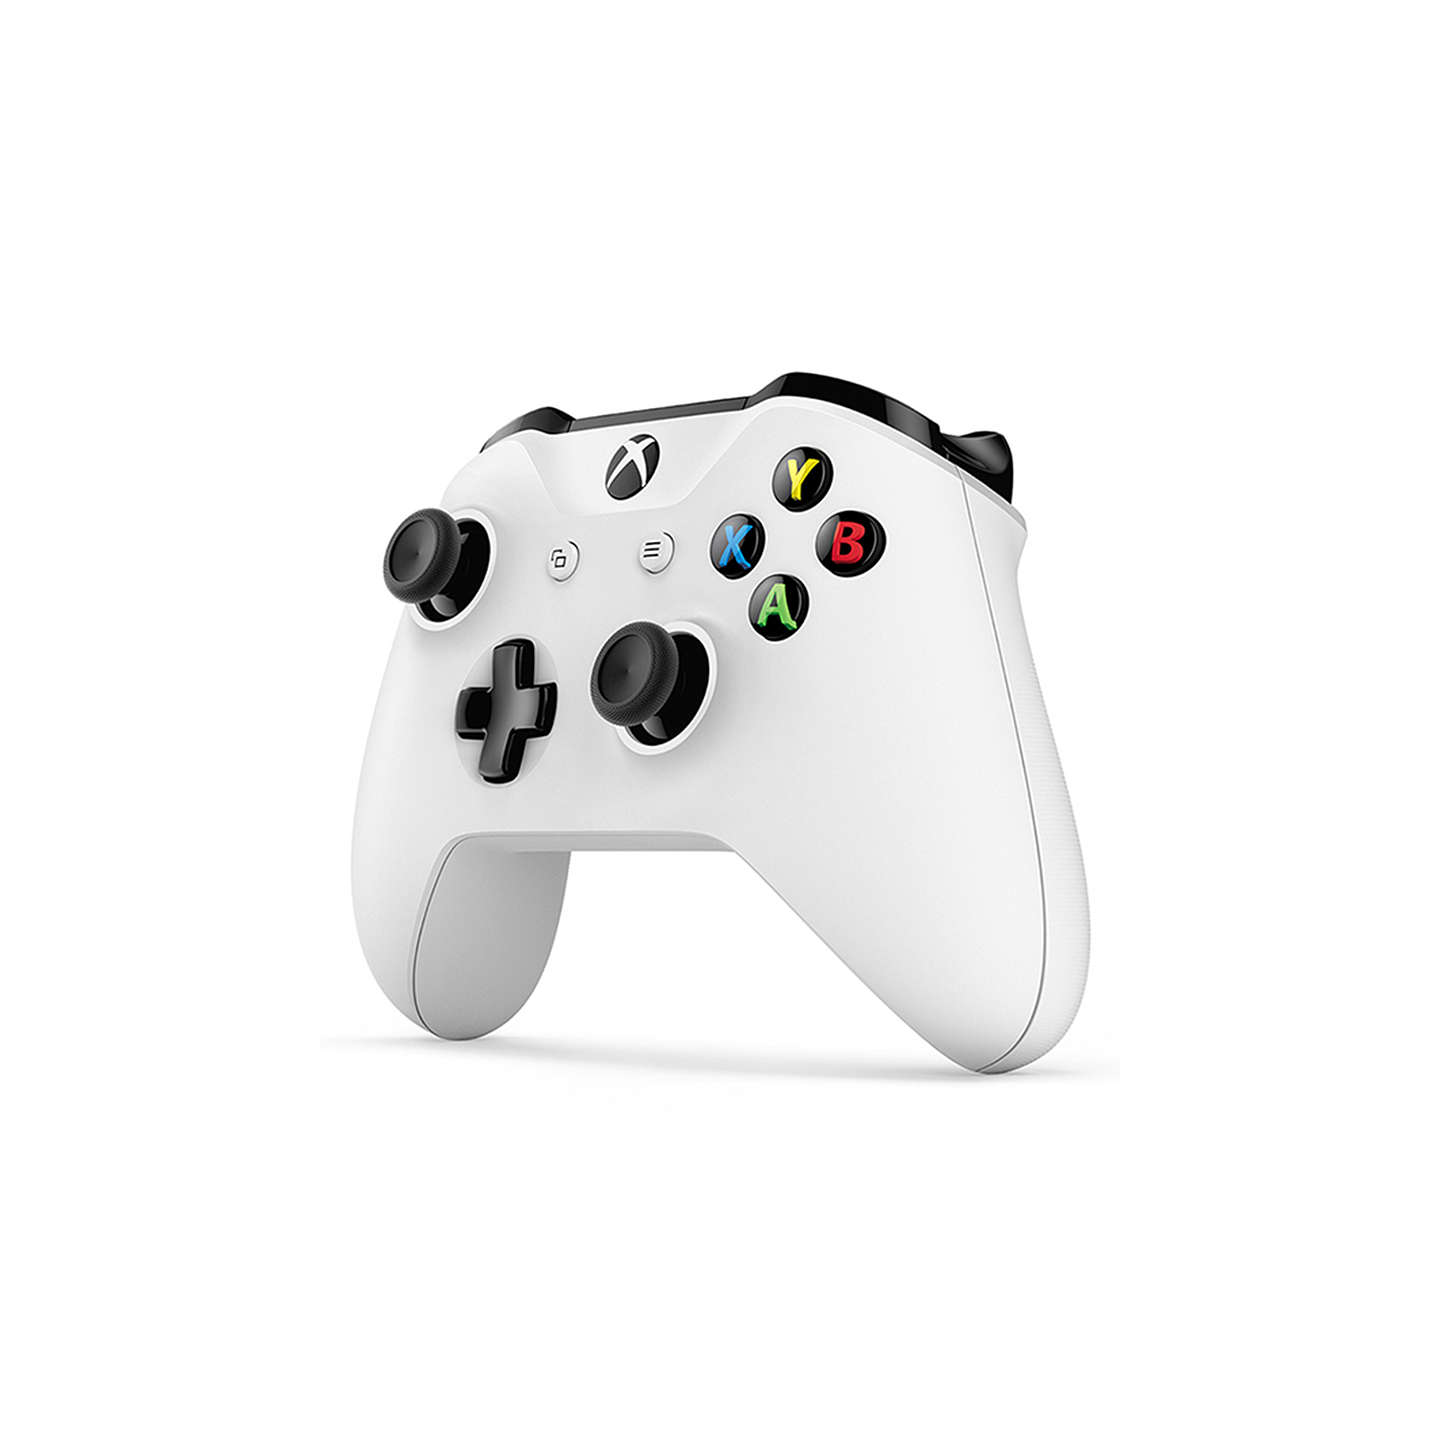 BuyMicrosoft Xbox One S Console, 500GB, with Wireless Controller and Assassin's Creed: Origins Online at johnlewis.com